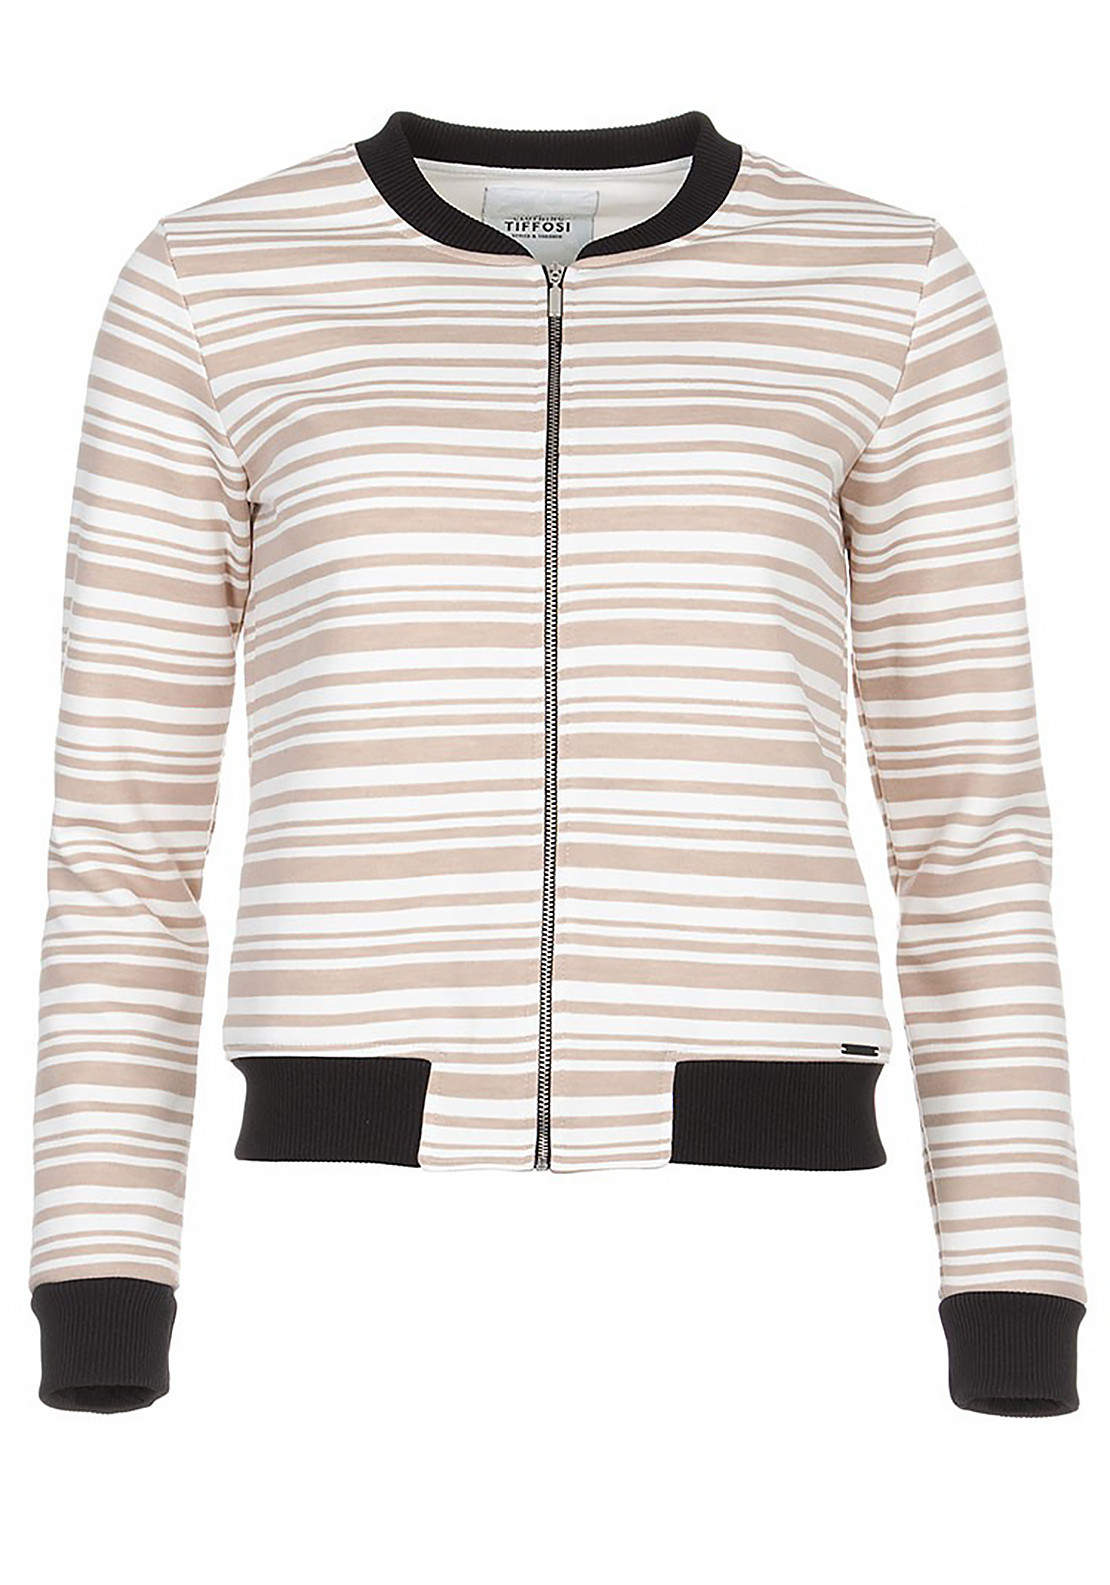 Tiffosi Womens Mara Striped Bomber Jacket, Beige